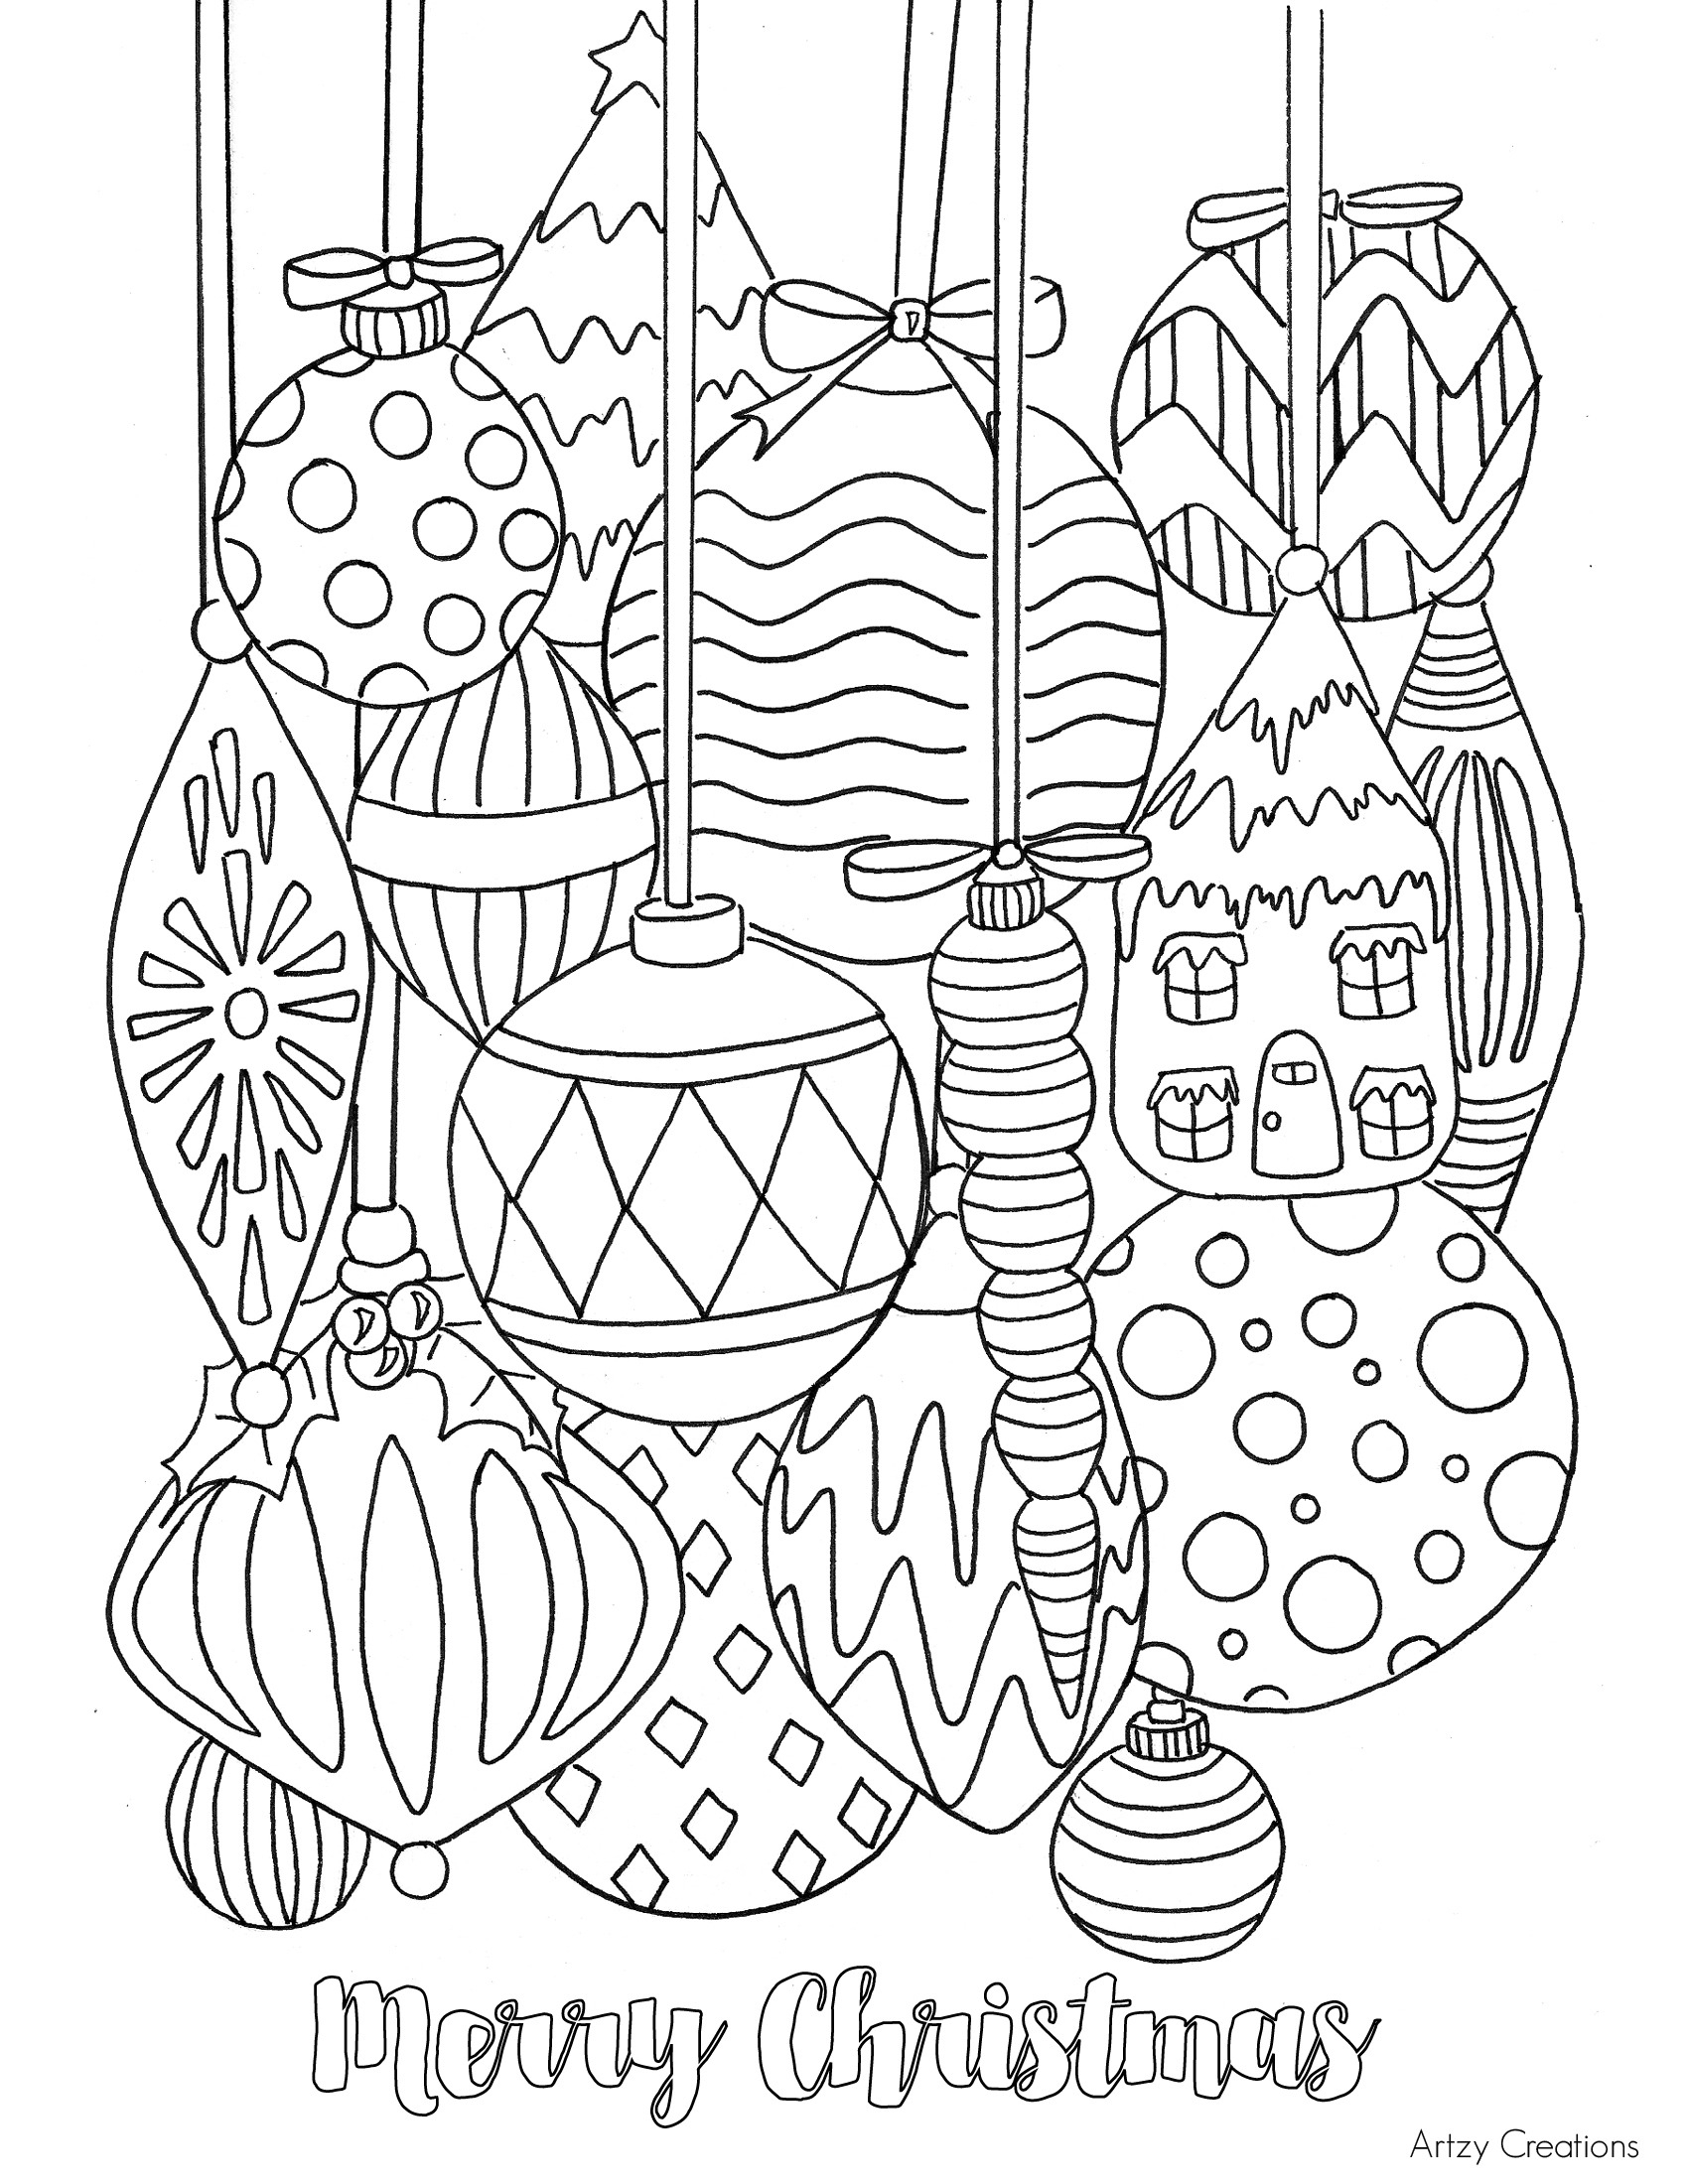 free self discipline coloring pages   19 Self Control Coloring Pages Download - Coloring Sheets